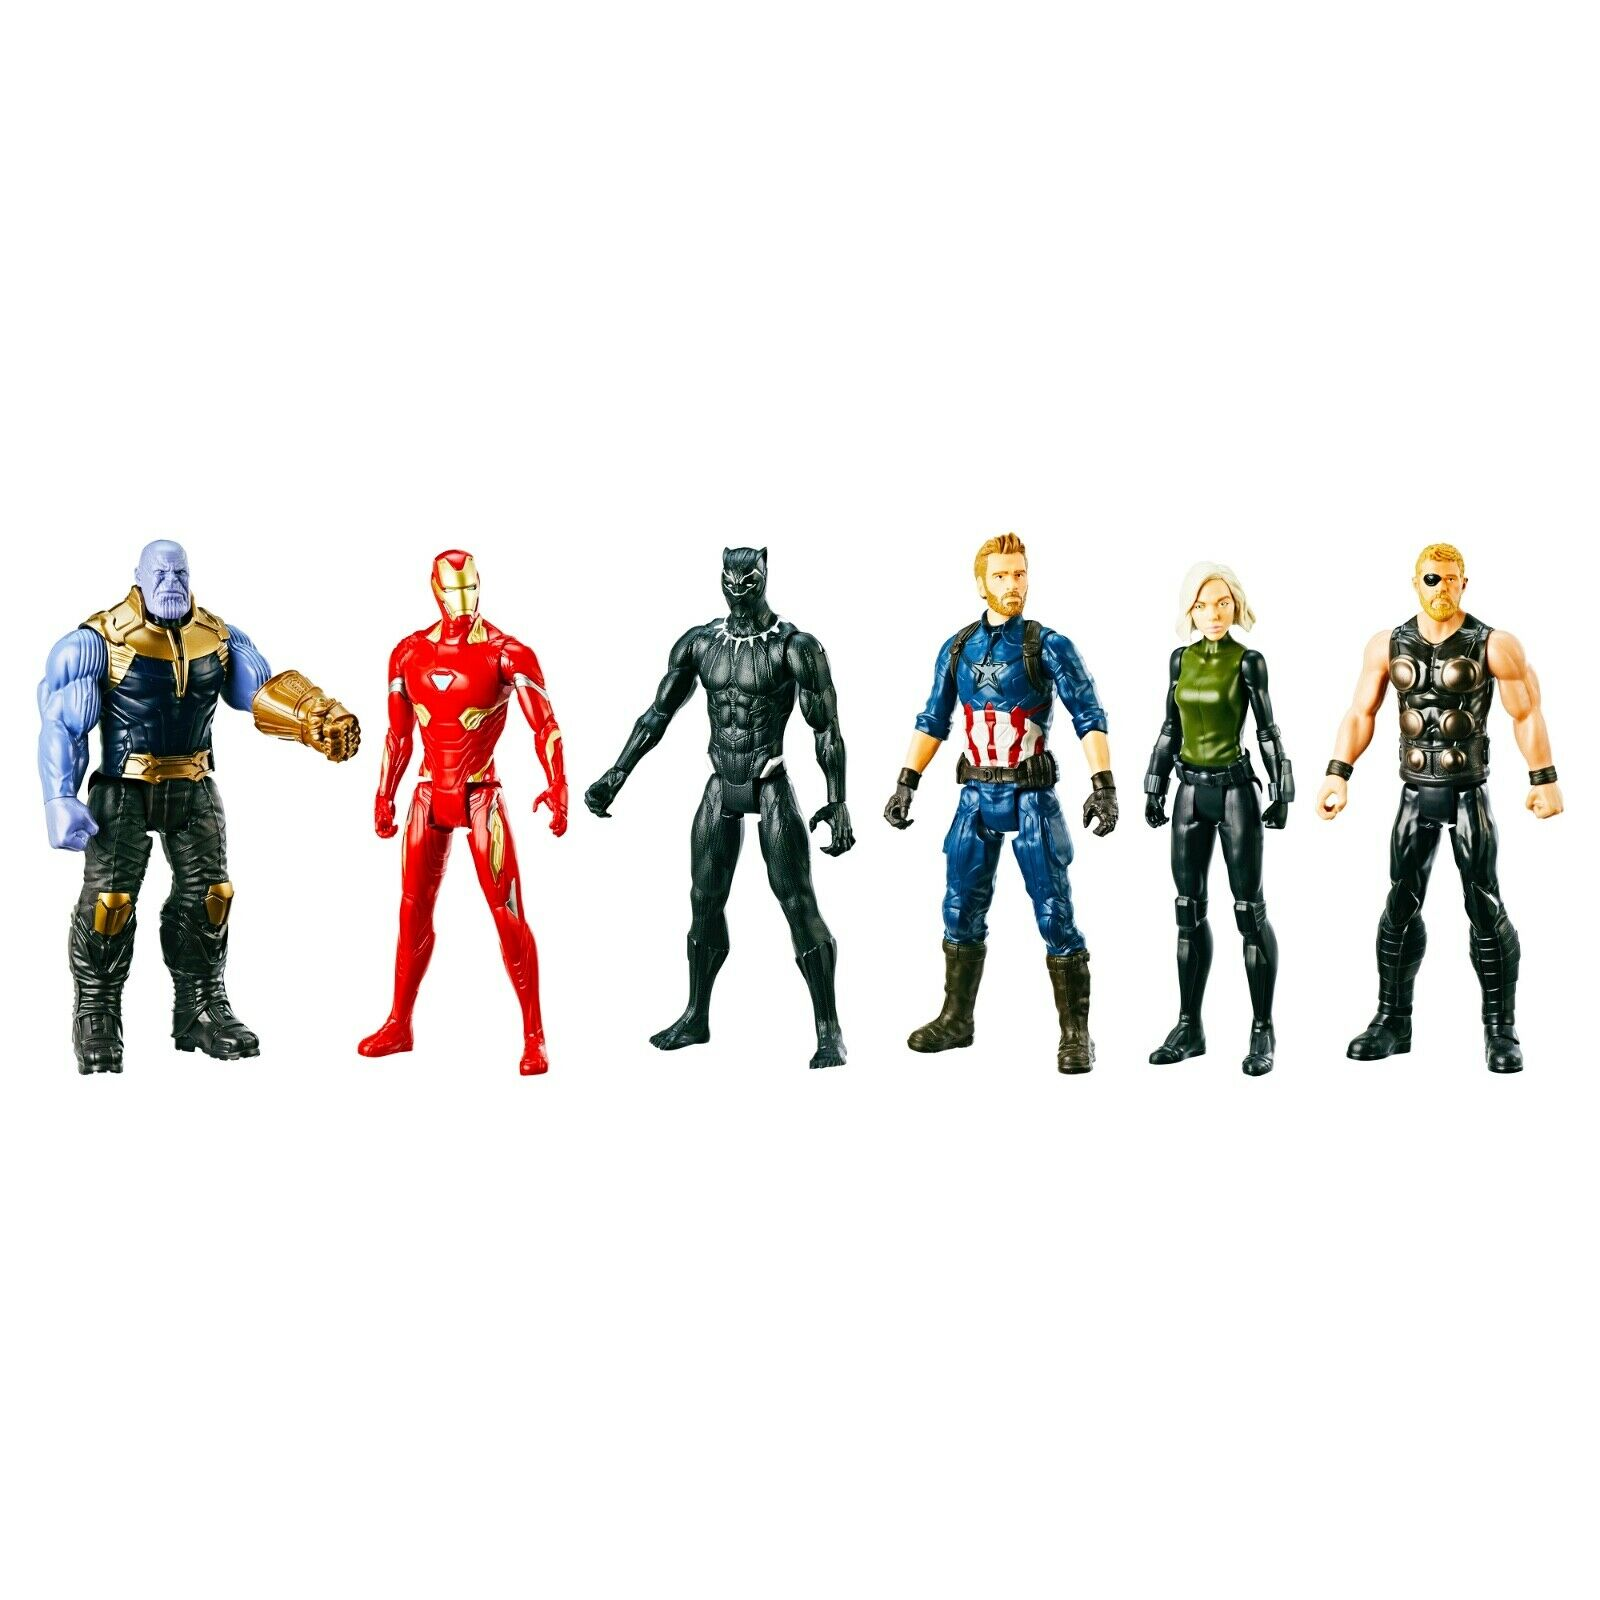 Marvel Avengers Infinity War Titan Hero Series Action Figure Set Walmart Ex